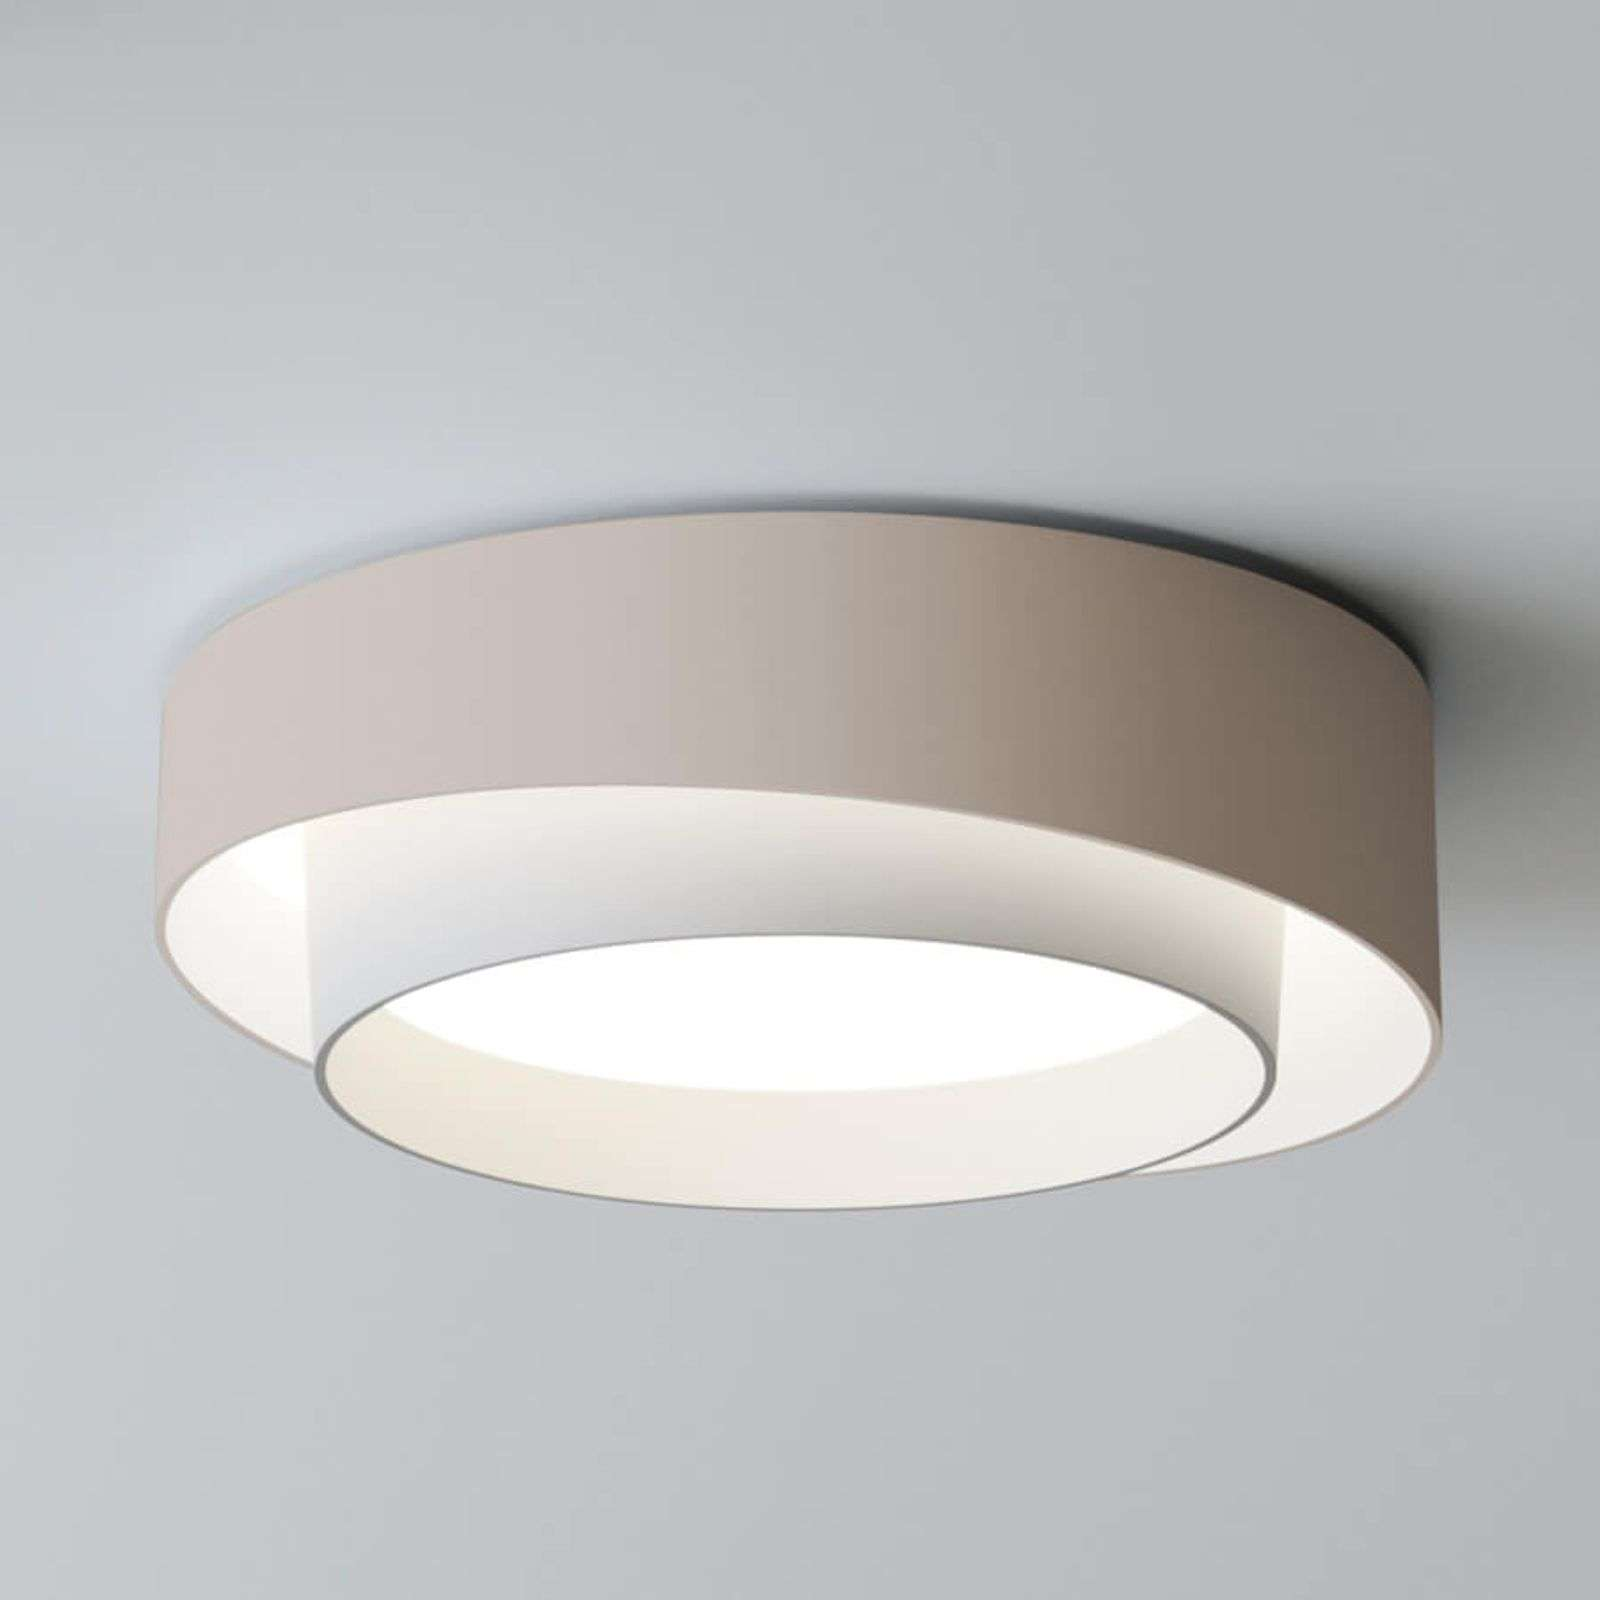 Potente plafoniera LED Centric, color crema